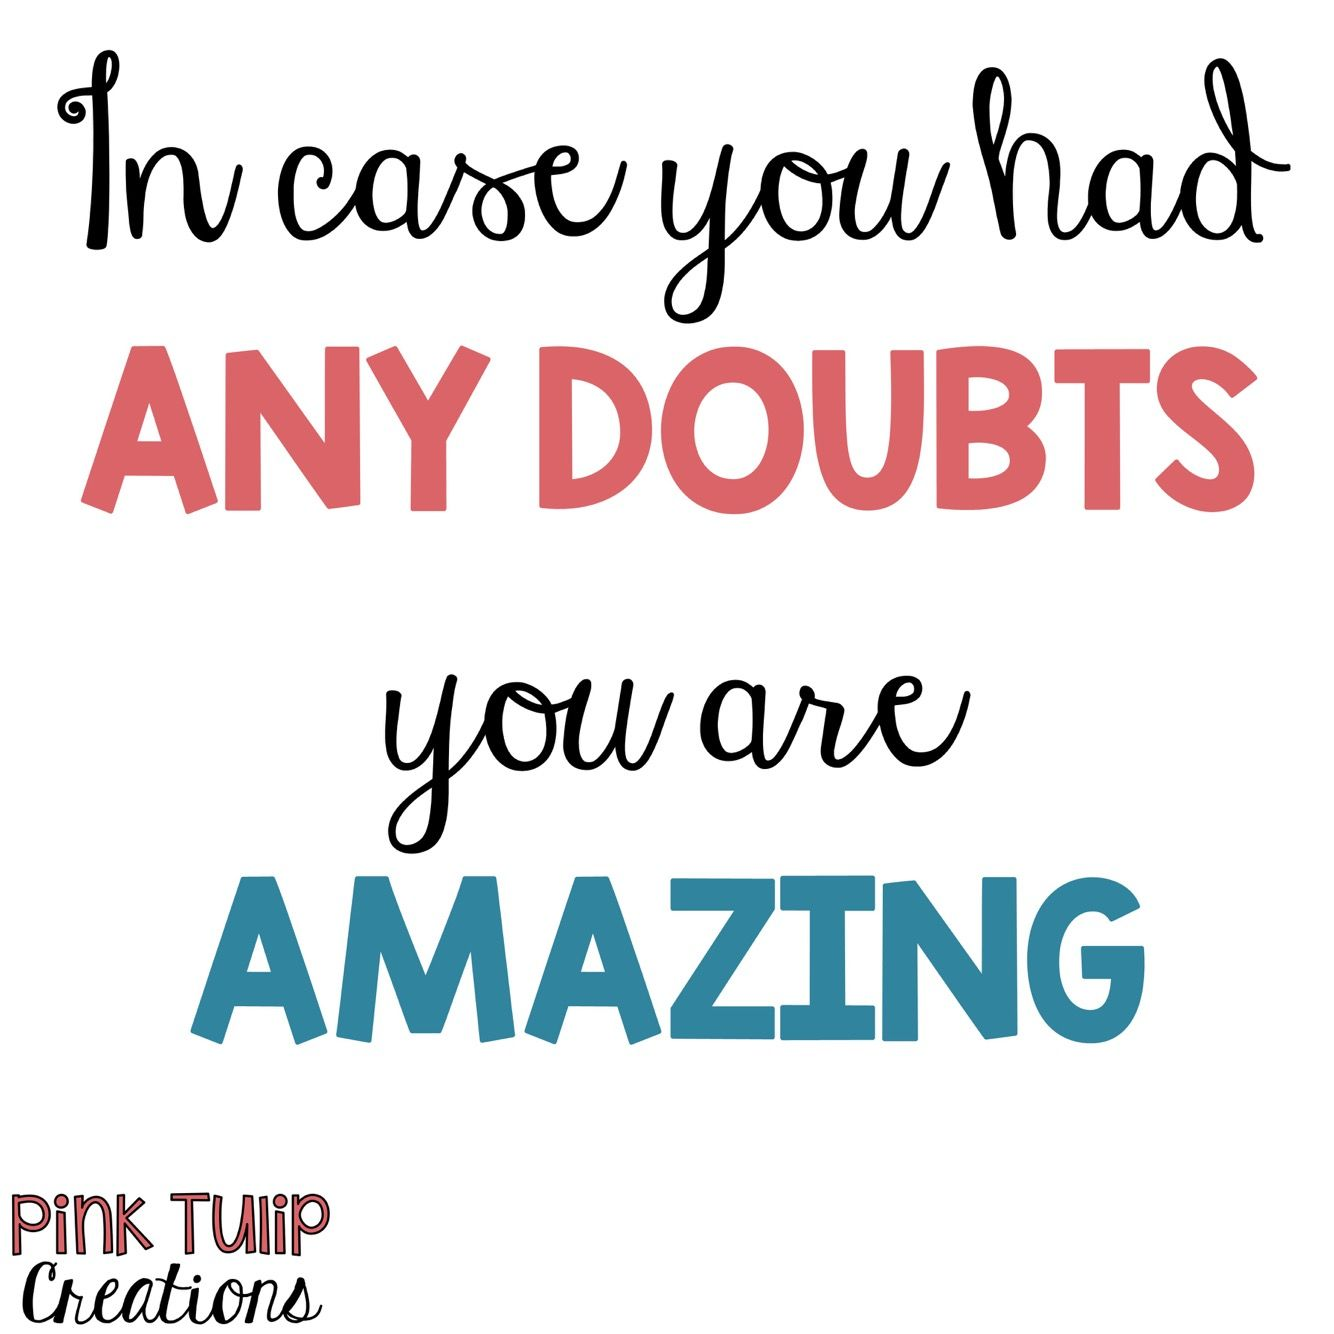 In case you had any doubts, you are amazing. teaching quotes